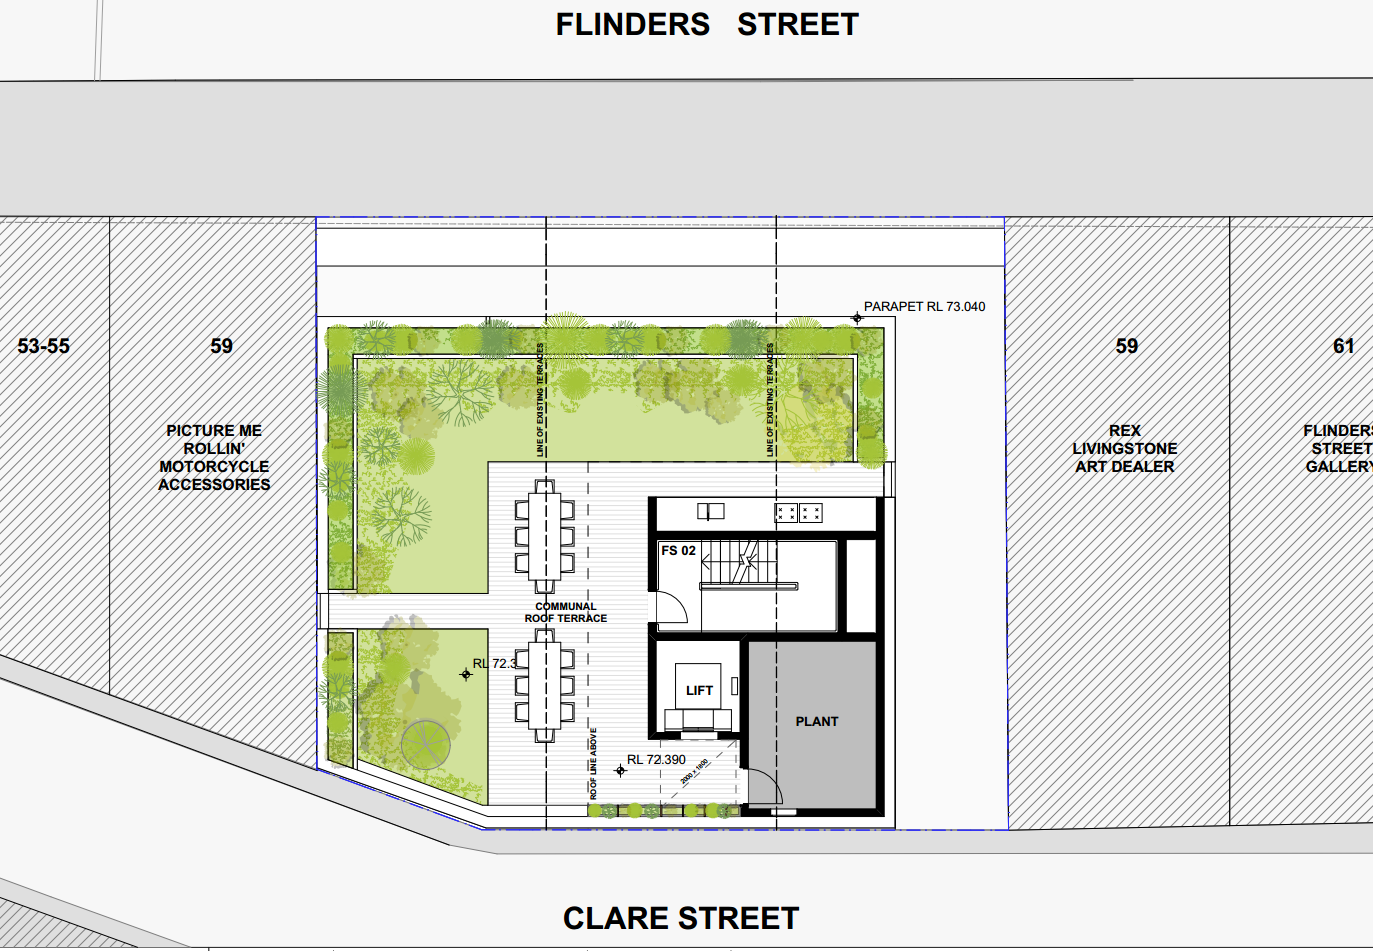 Roof terrace floor plan. Source: City of Sydney